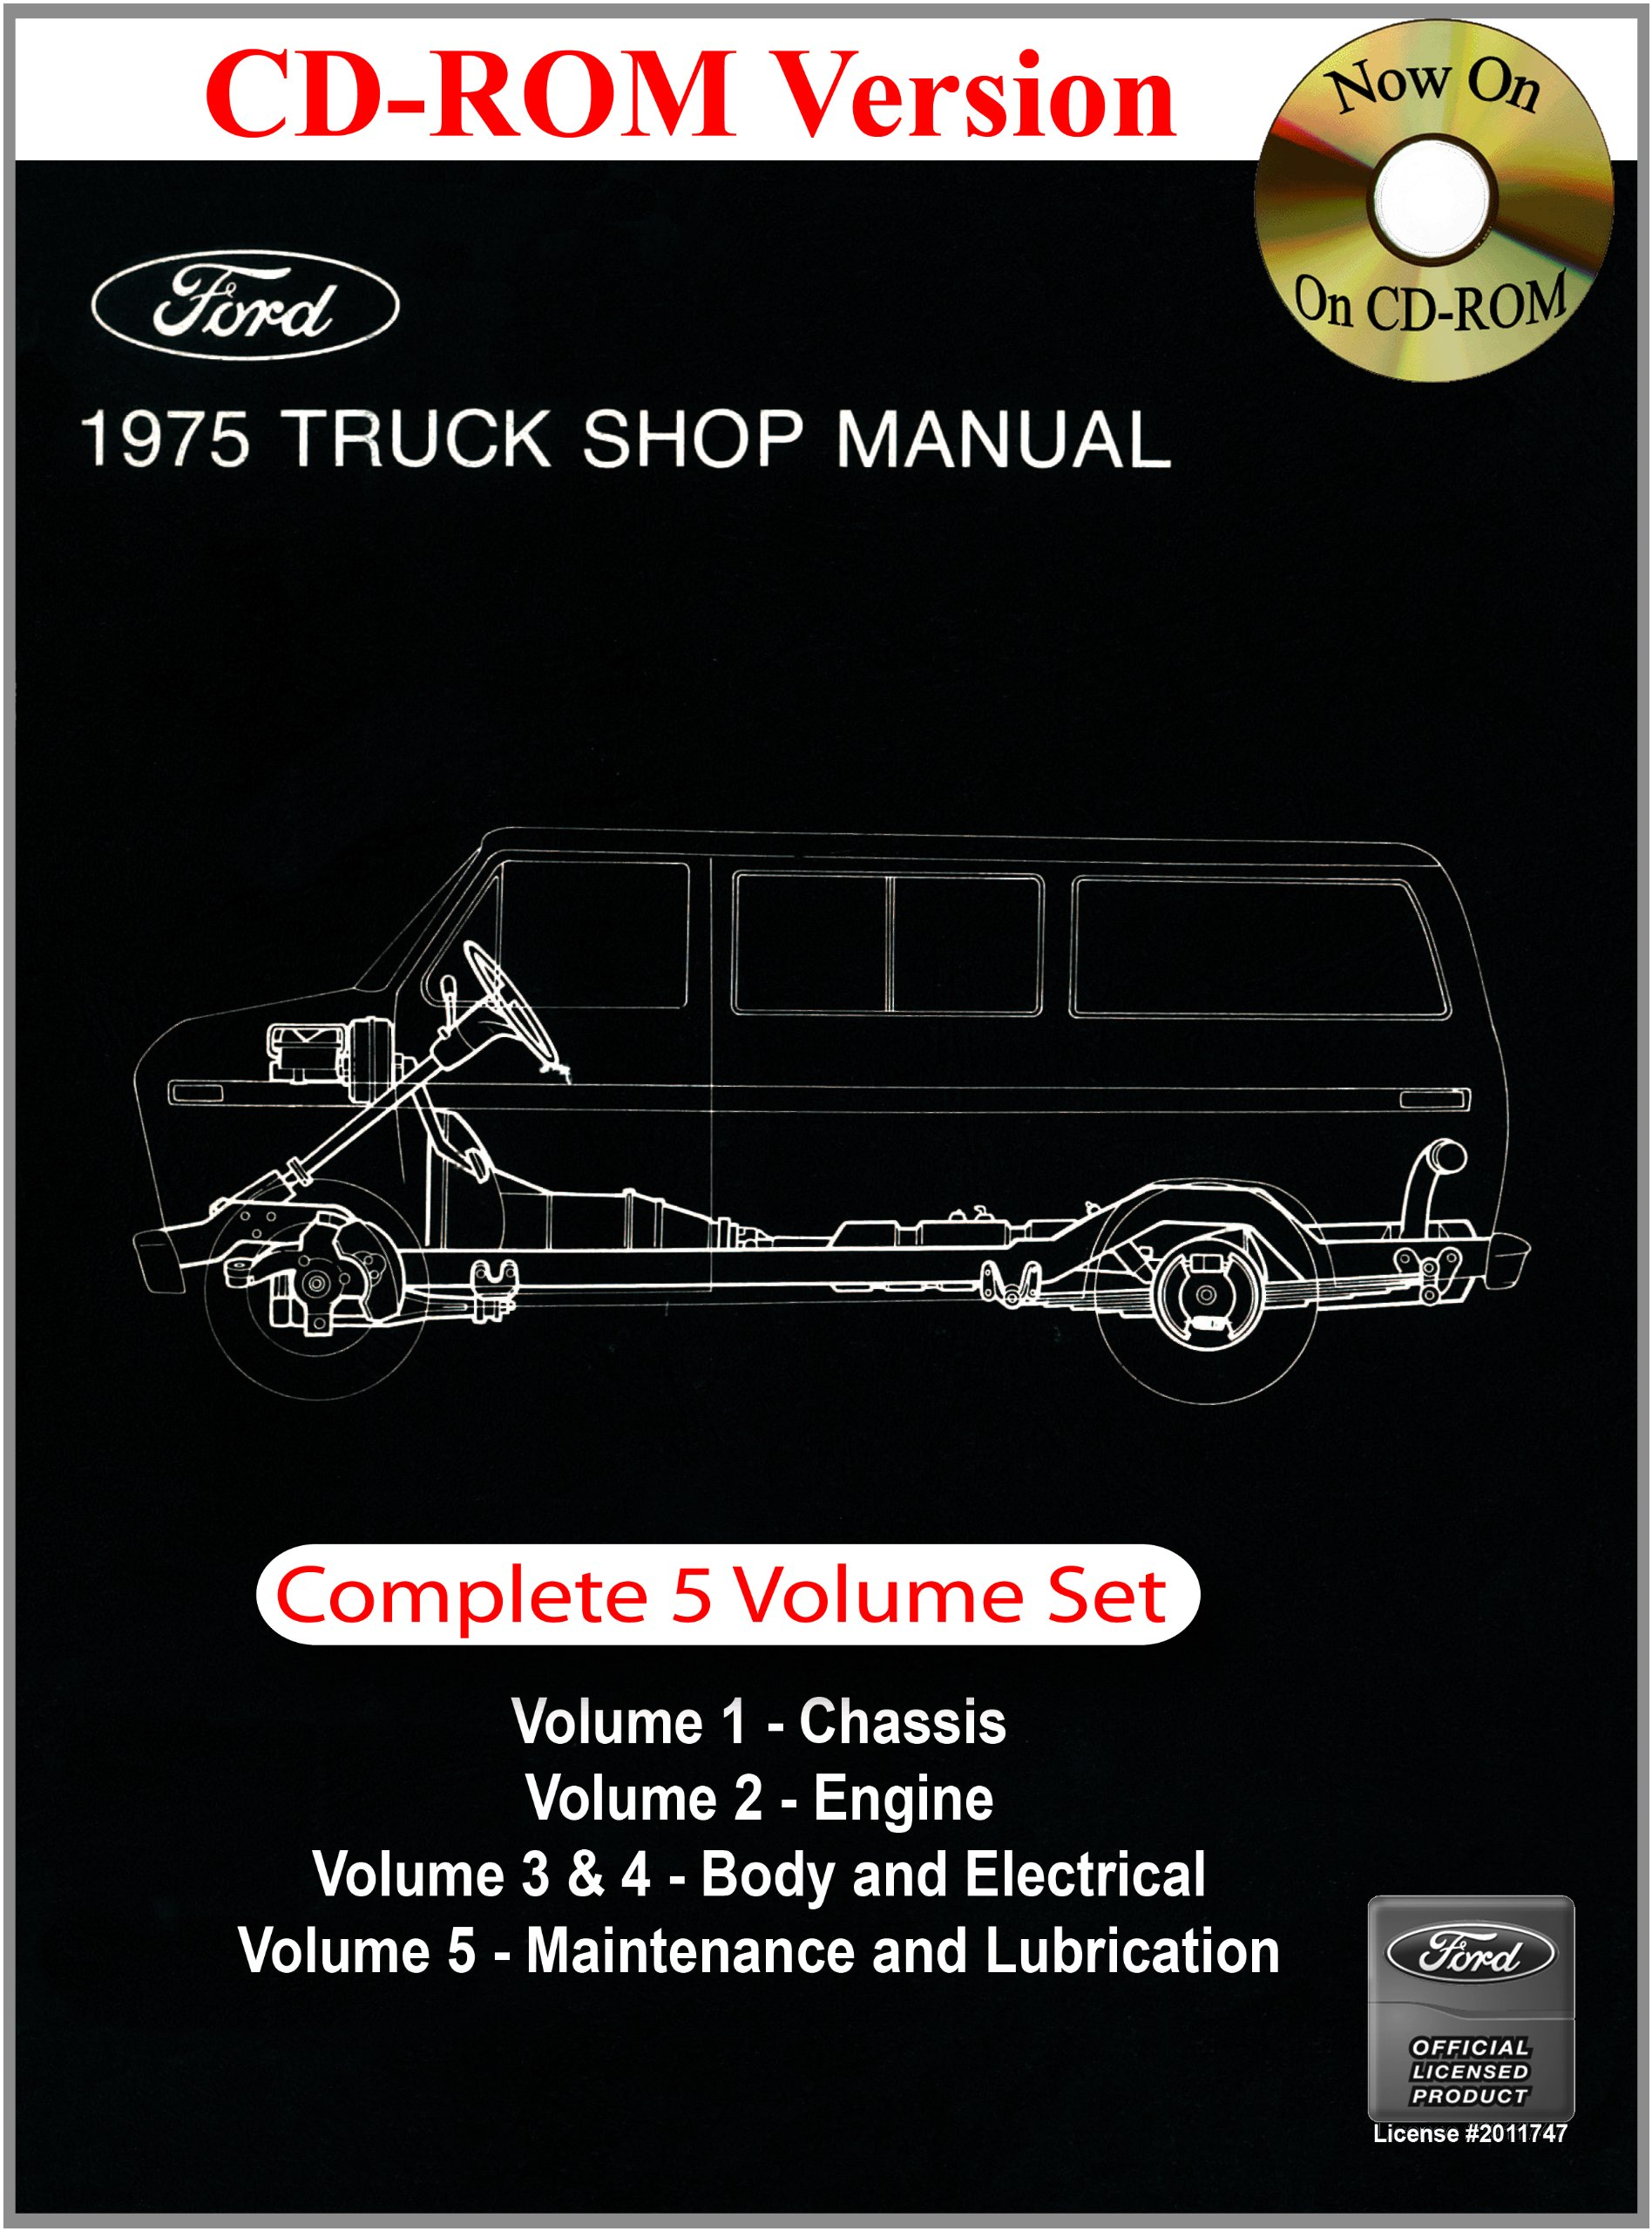 1975 ford f 150 wiring diagrams 1975 ford truck shop manual ford motor company  david e leblanc  1975 ford truck shop manual ford motor